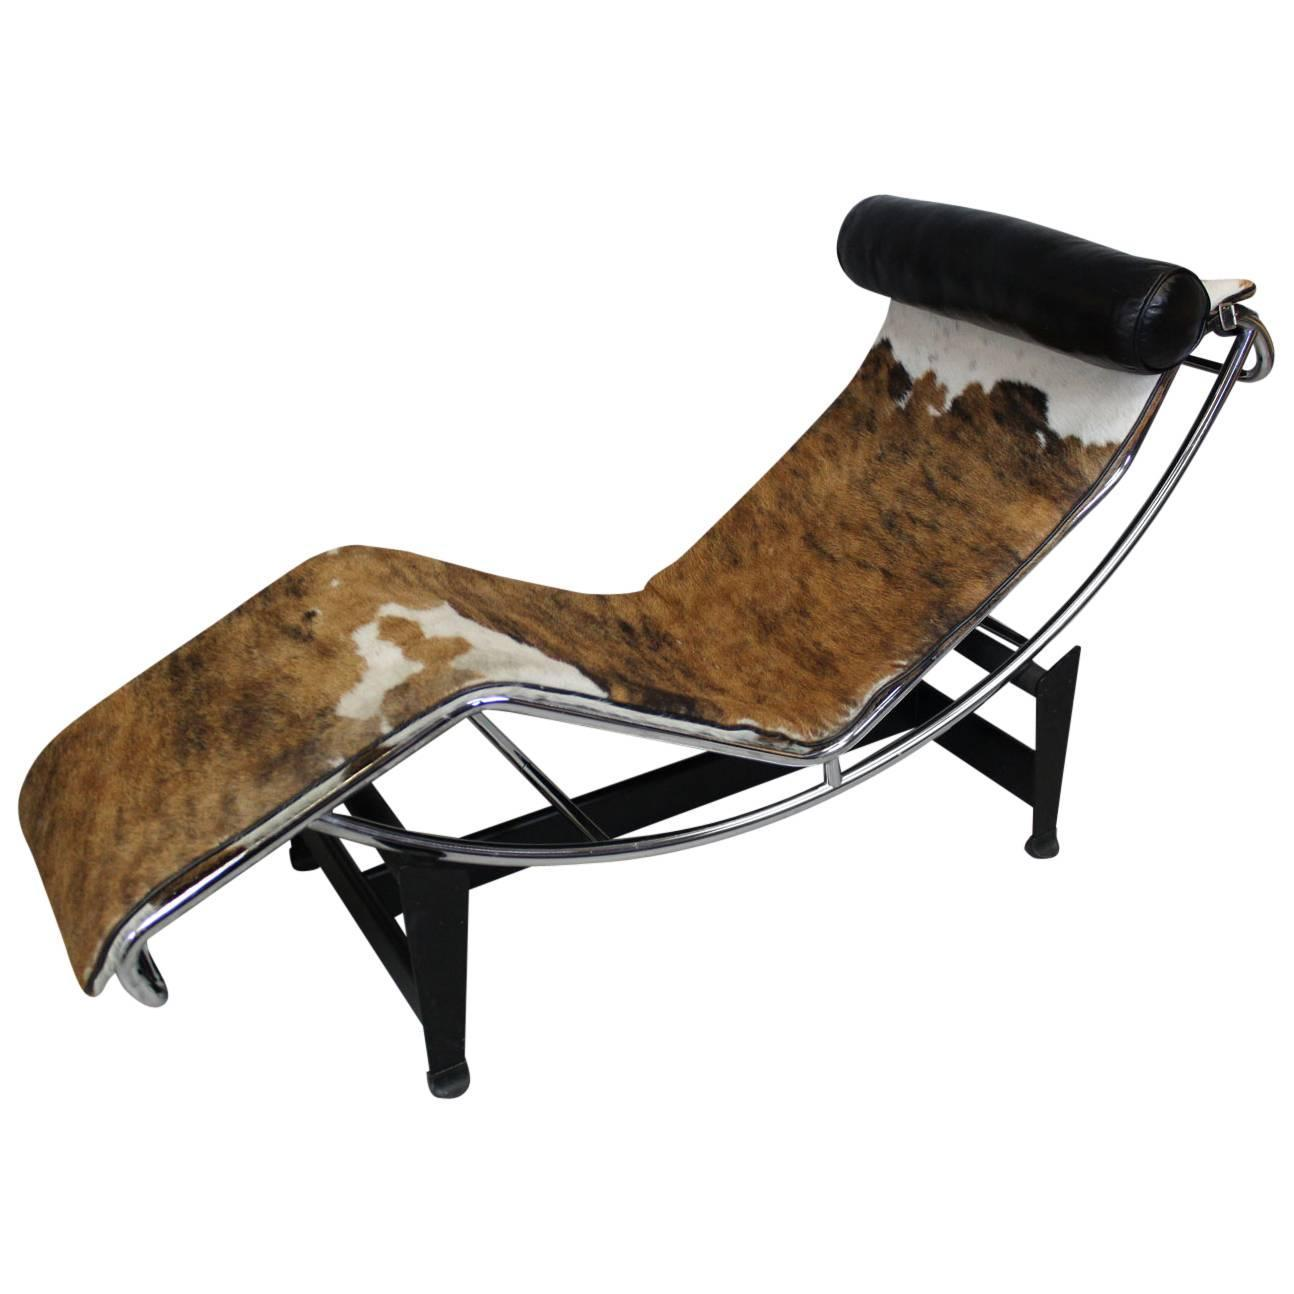 Le corbusier lc4 chaise lounge manufactured by cassina at for Chaise le corbusier